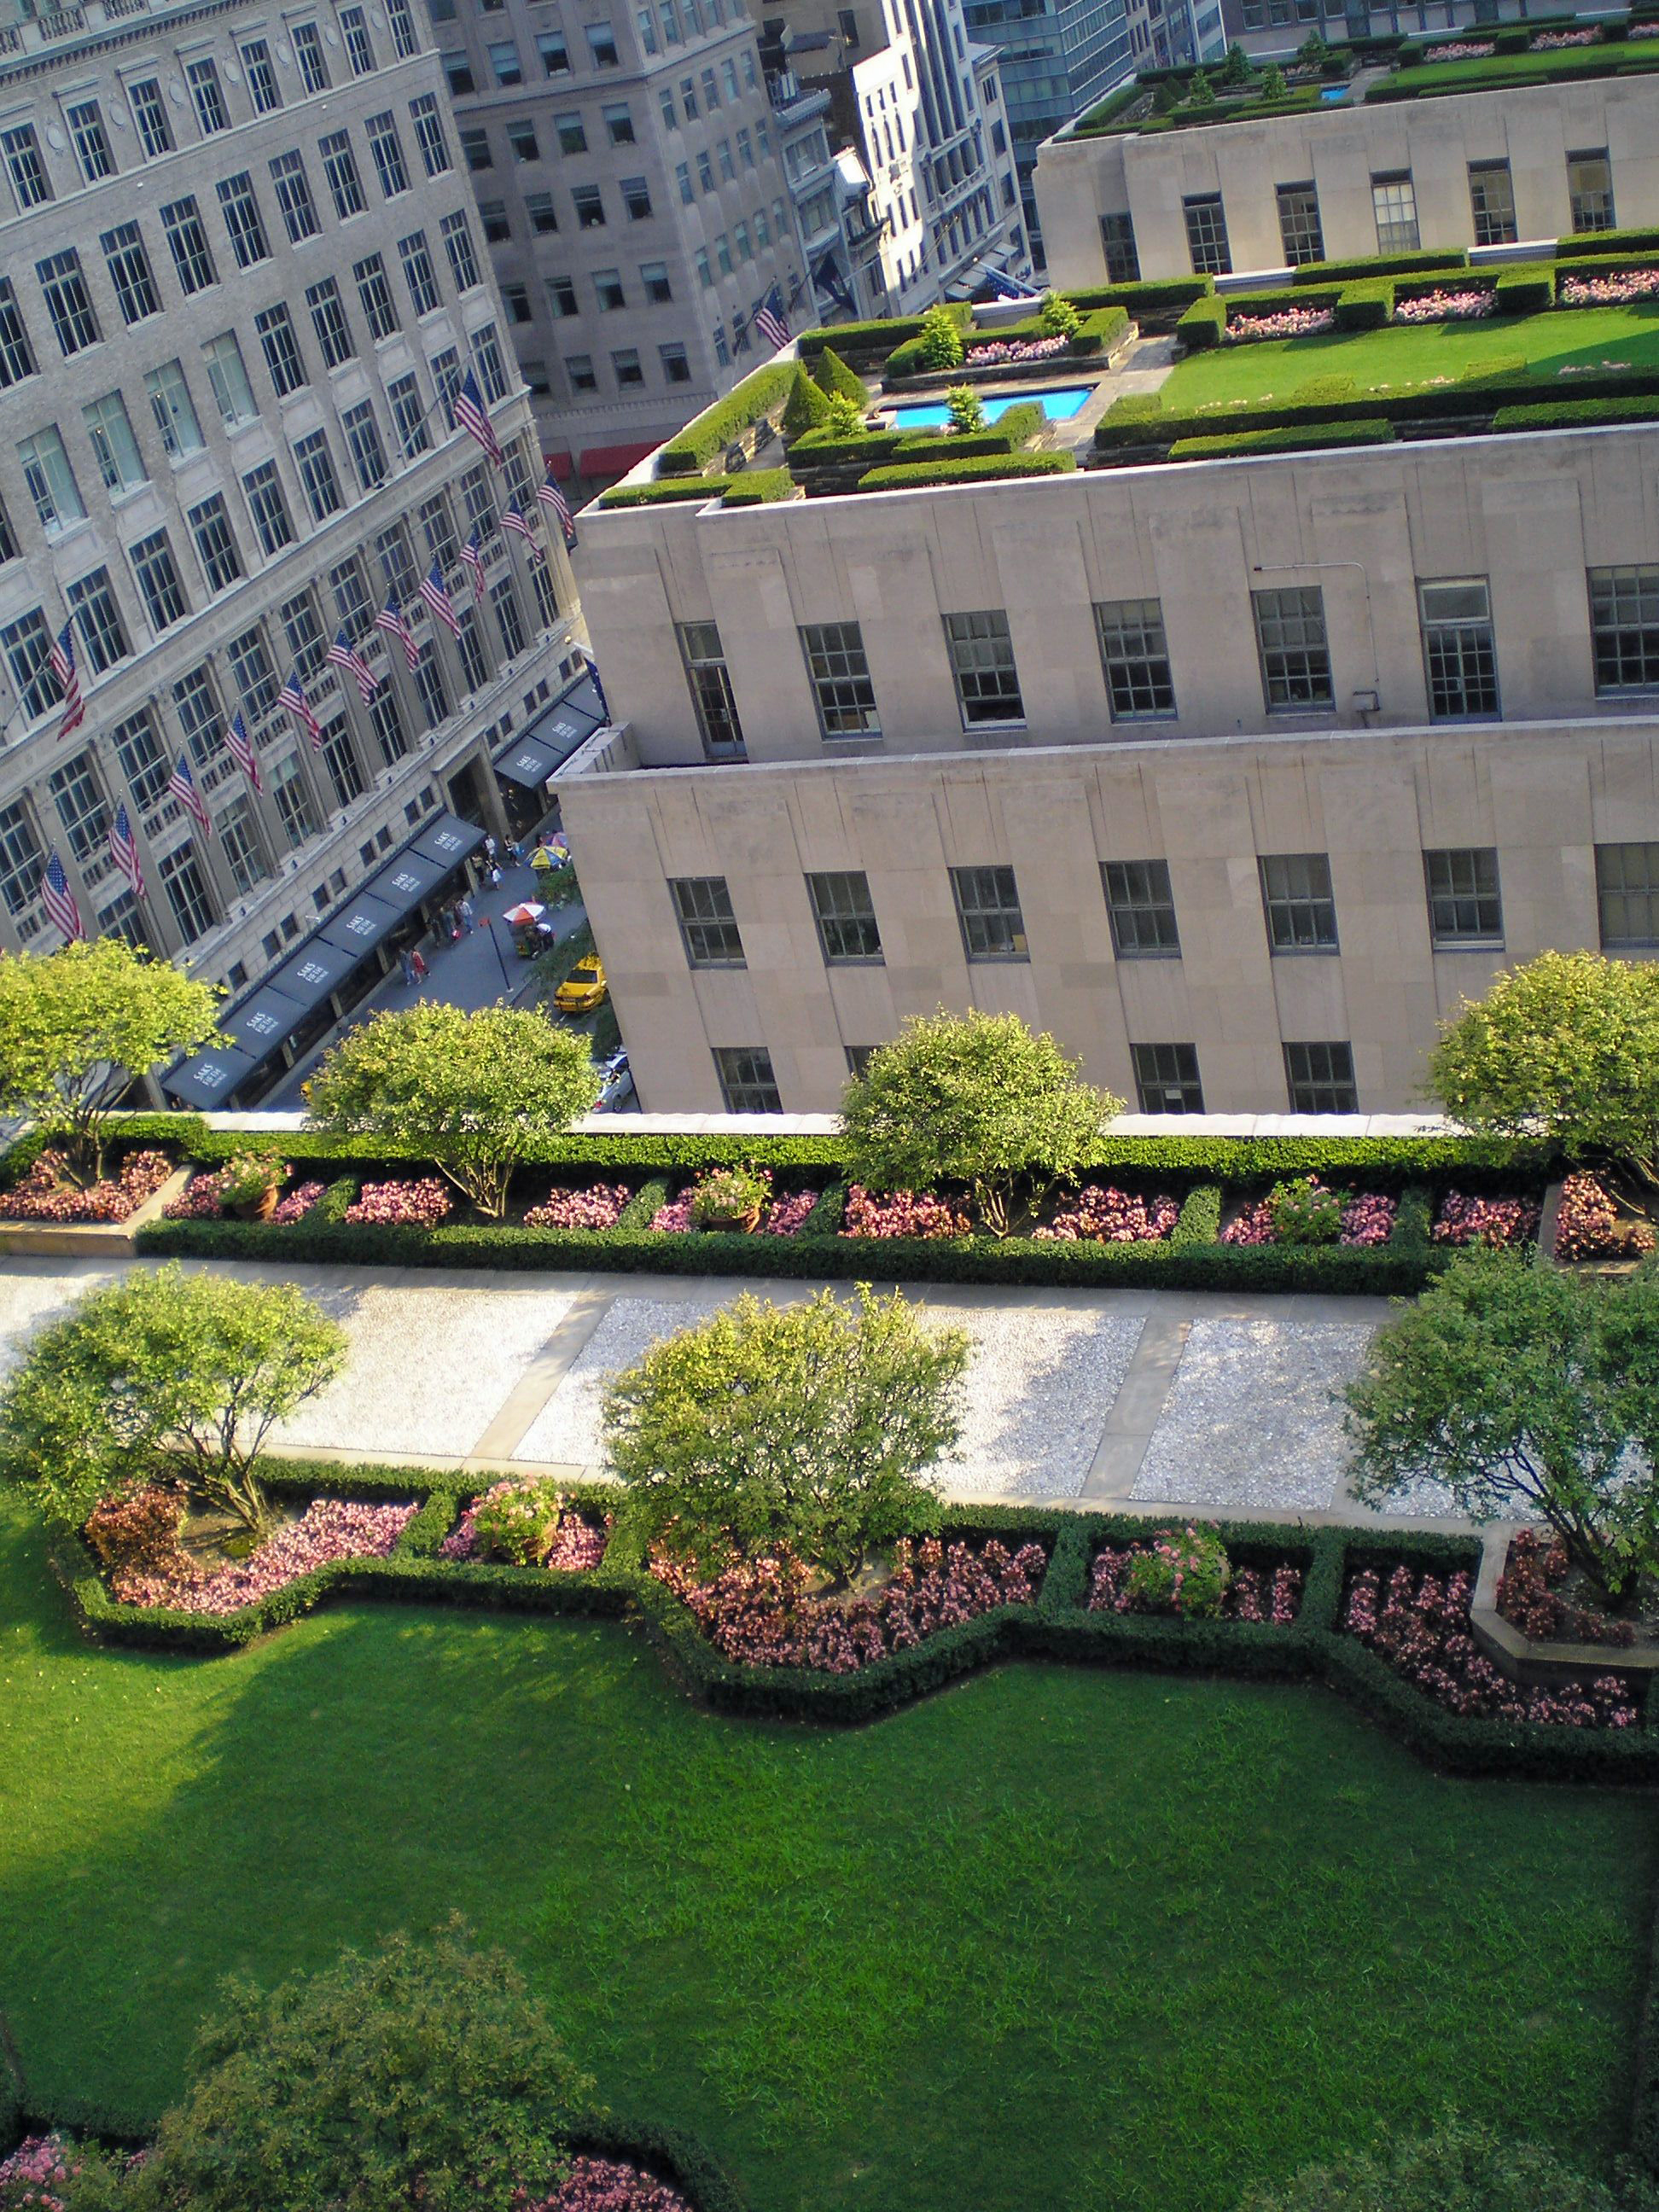 1000 Images About Rooftop Gardens And Gardening On